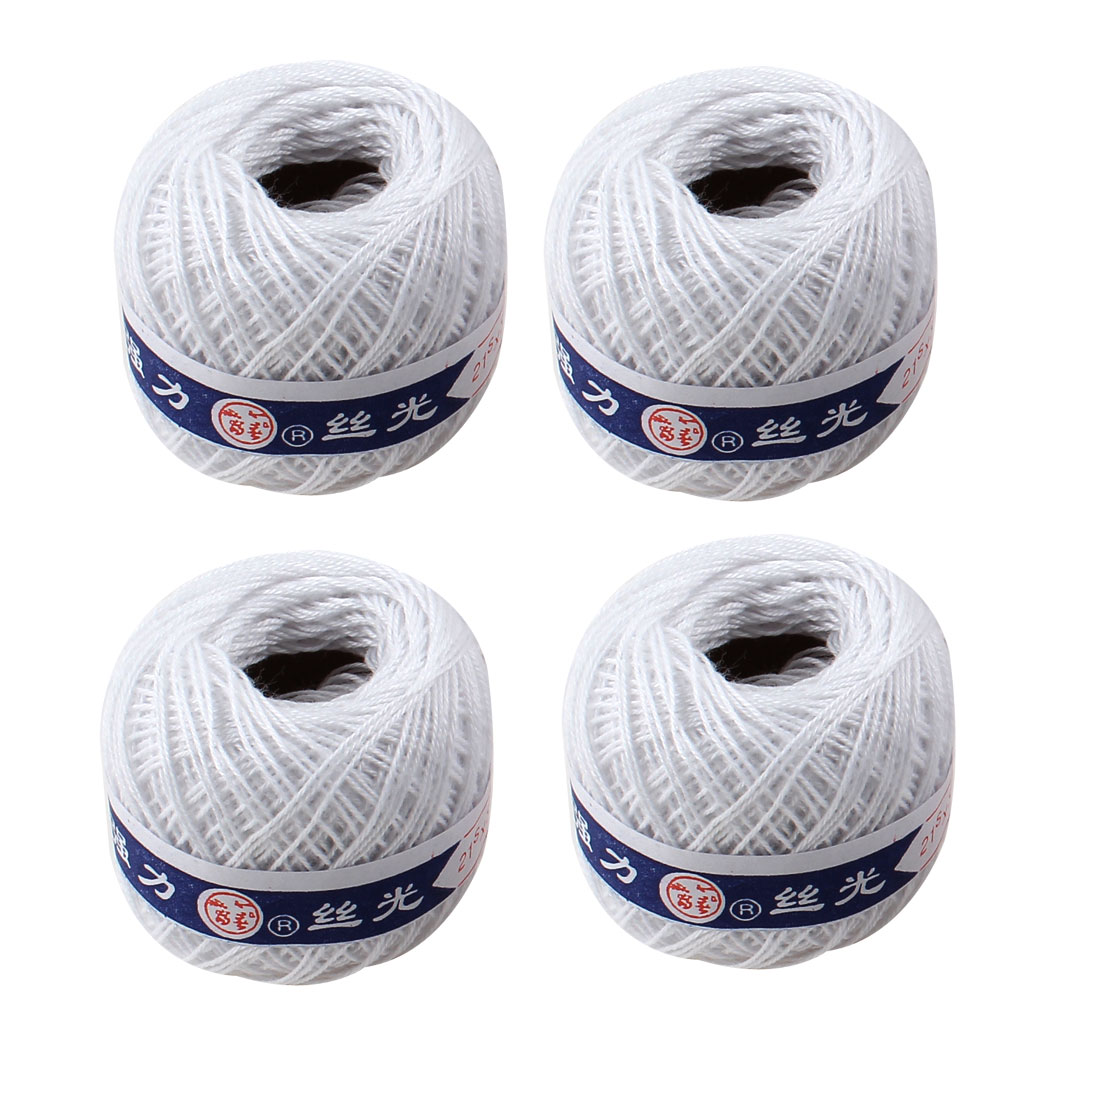 Unique Bargains Travel White Crochet Crocheting Thread Balls Sewing Strings 4 Pcs